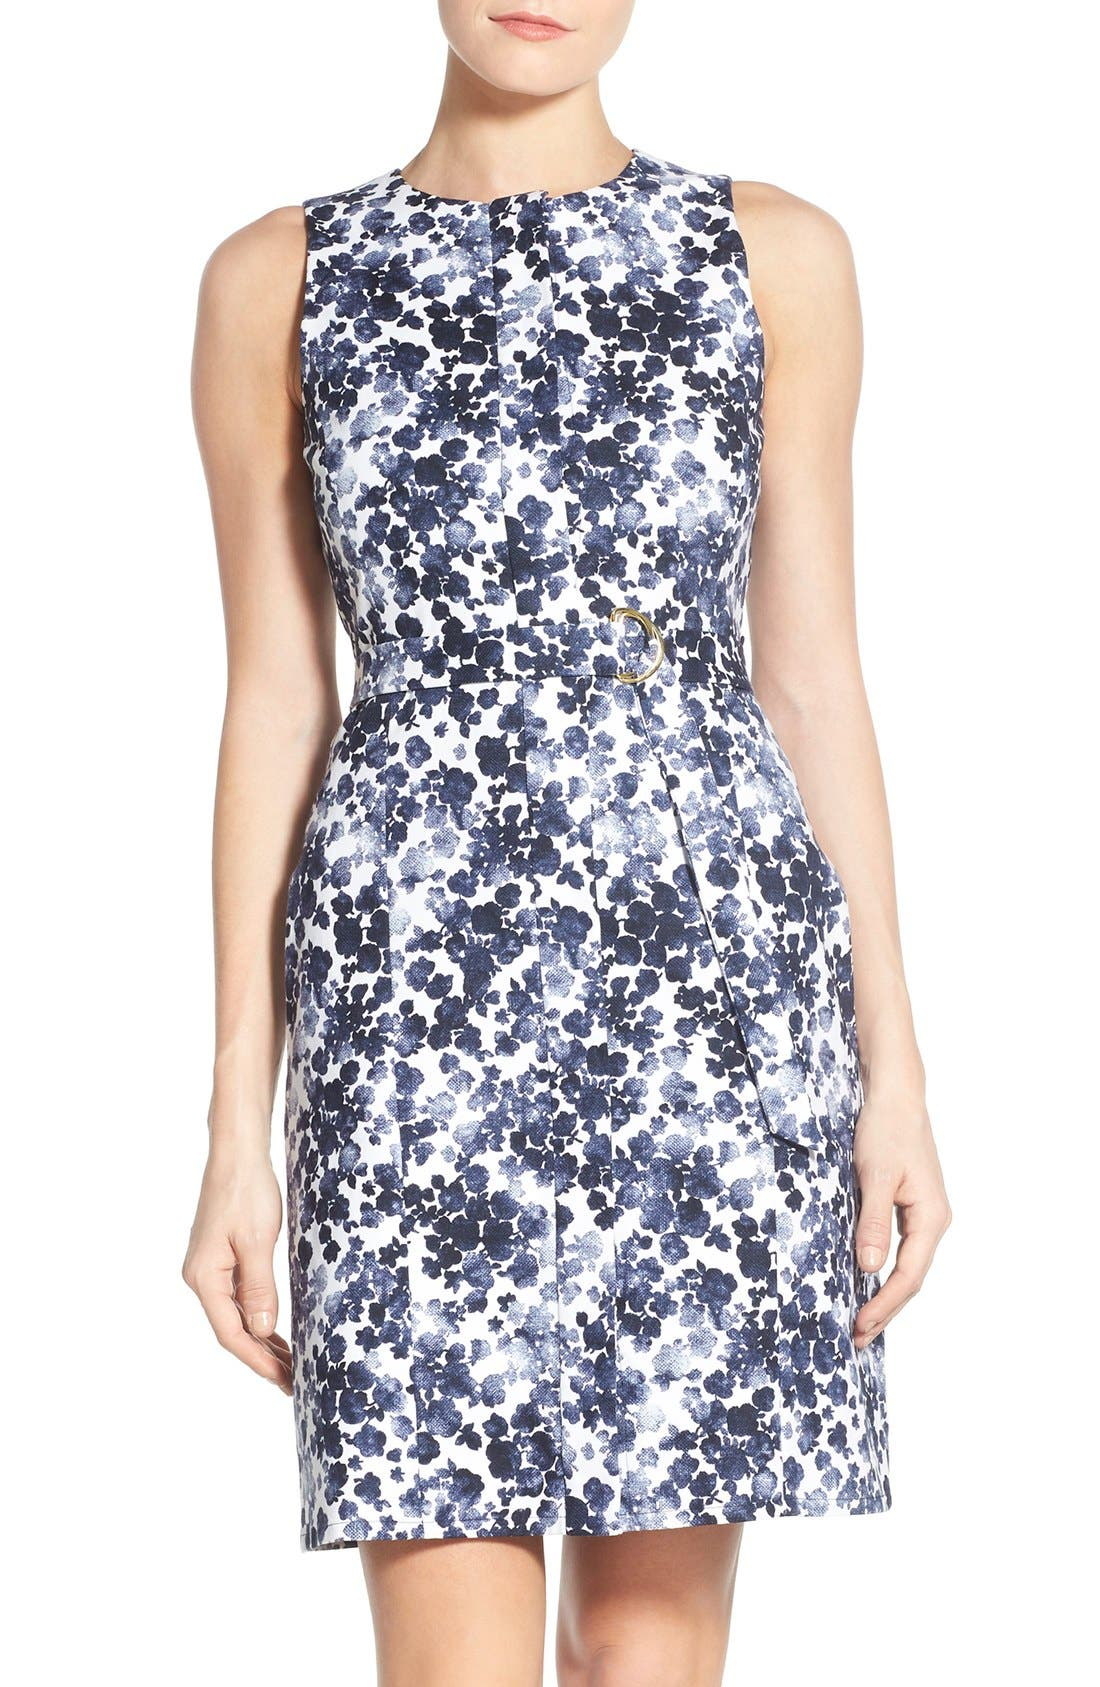 Alternate Image 1 Selected - MICHAEL Michael Kors 'Gemma' Print Belted A-Line Dress